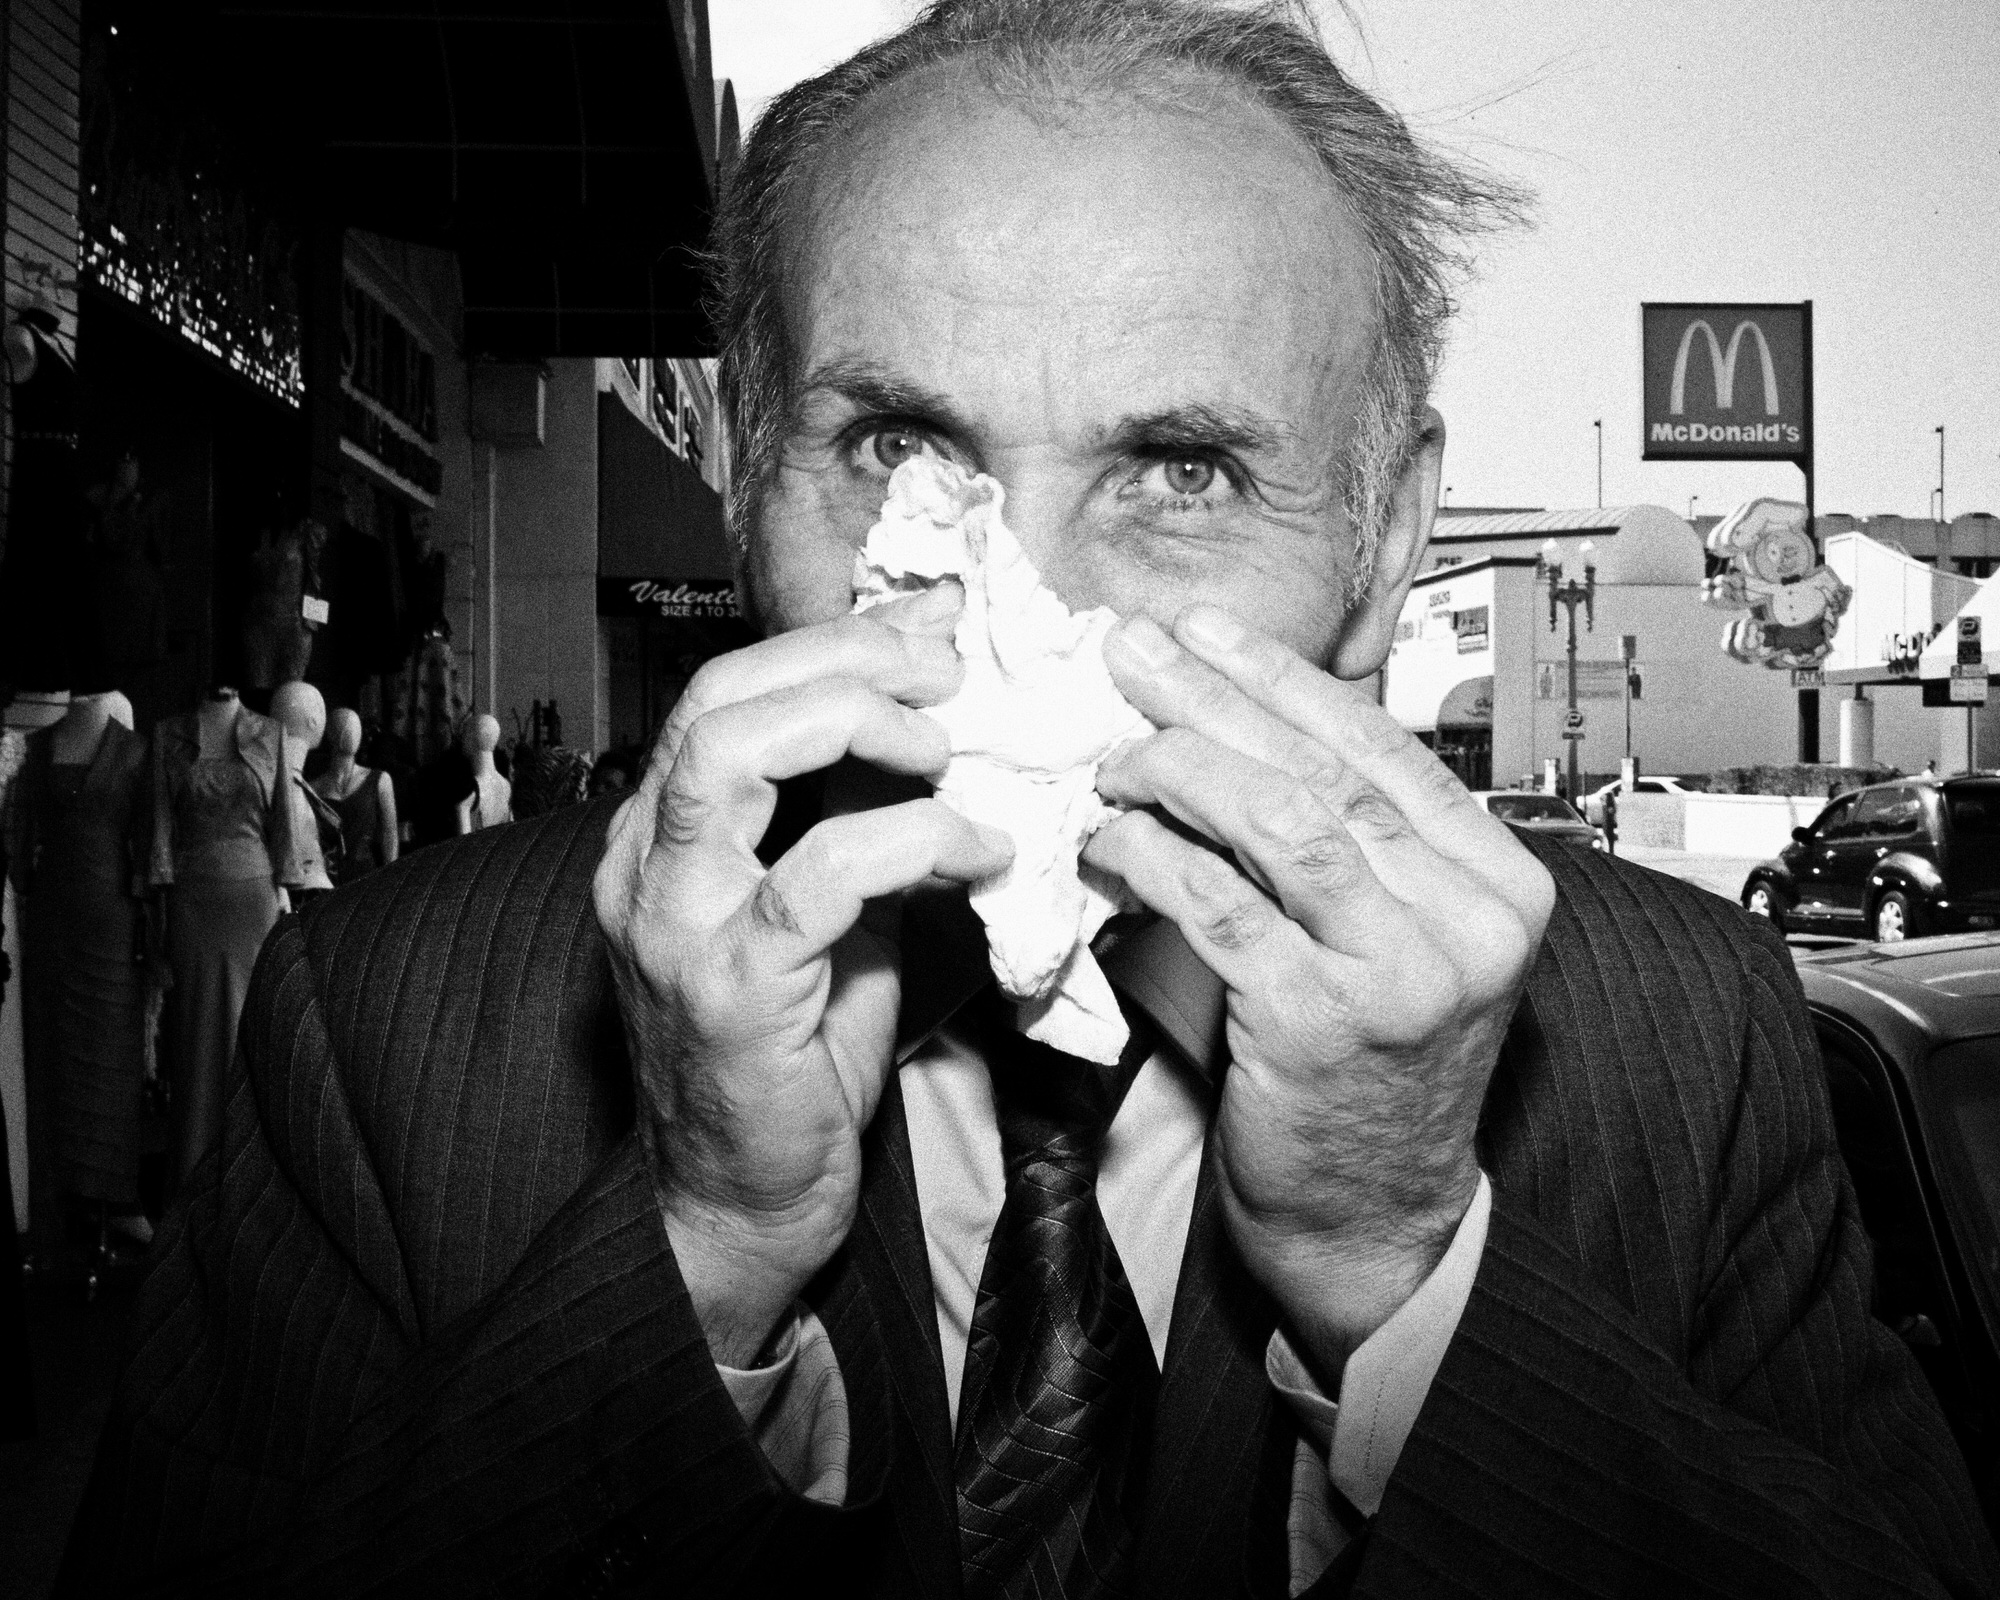 eric kim black and white street photography downtown los angeles 00003